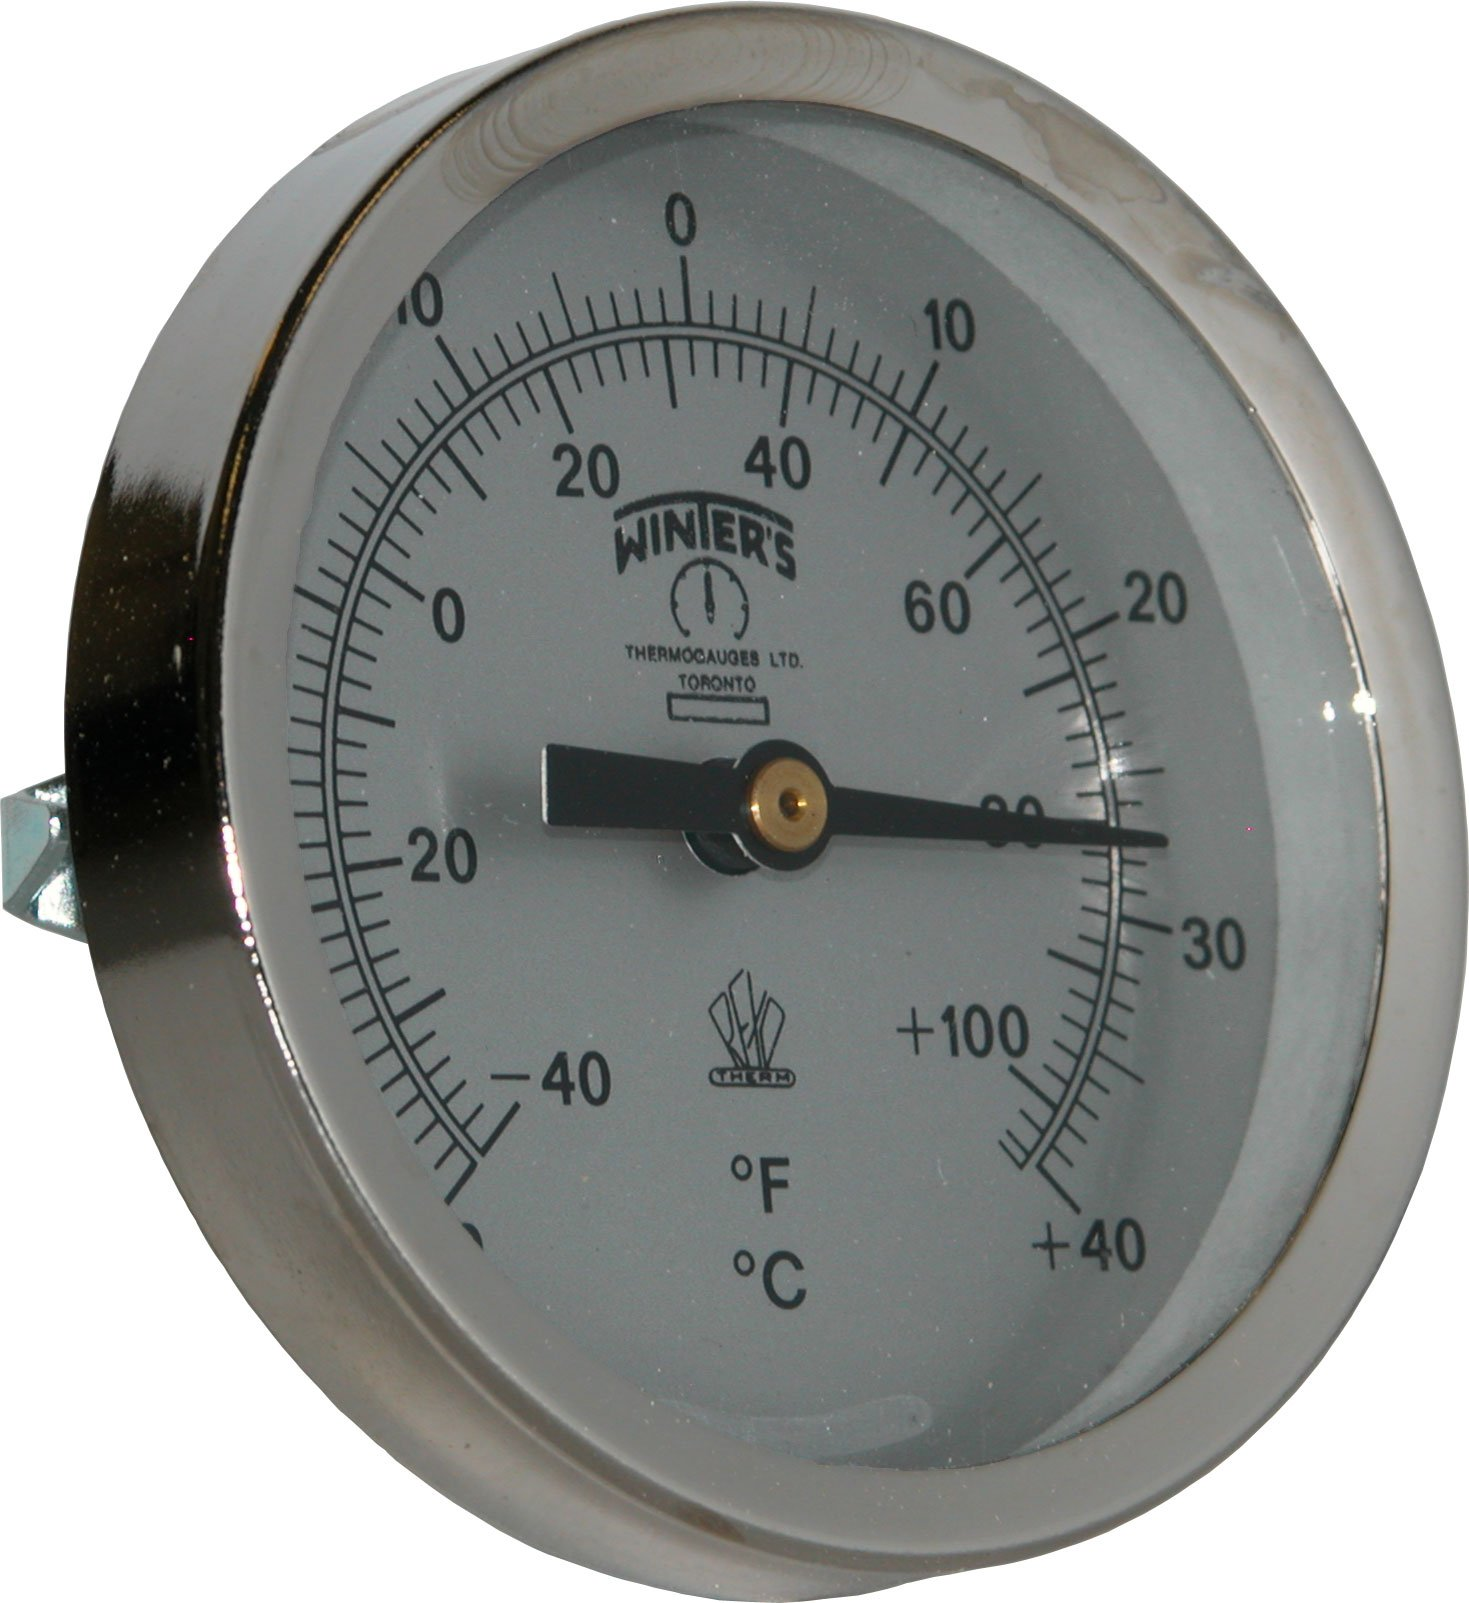 Winters TCT Series Dual Scale Mild Steel Clamp-On Thermometer, 2-1/2'' Dial, -40-110 F/C Range